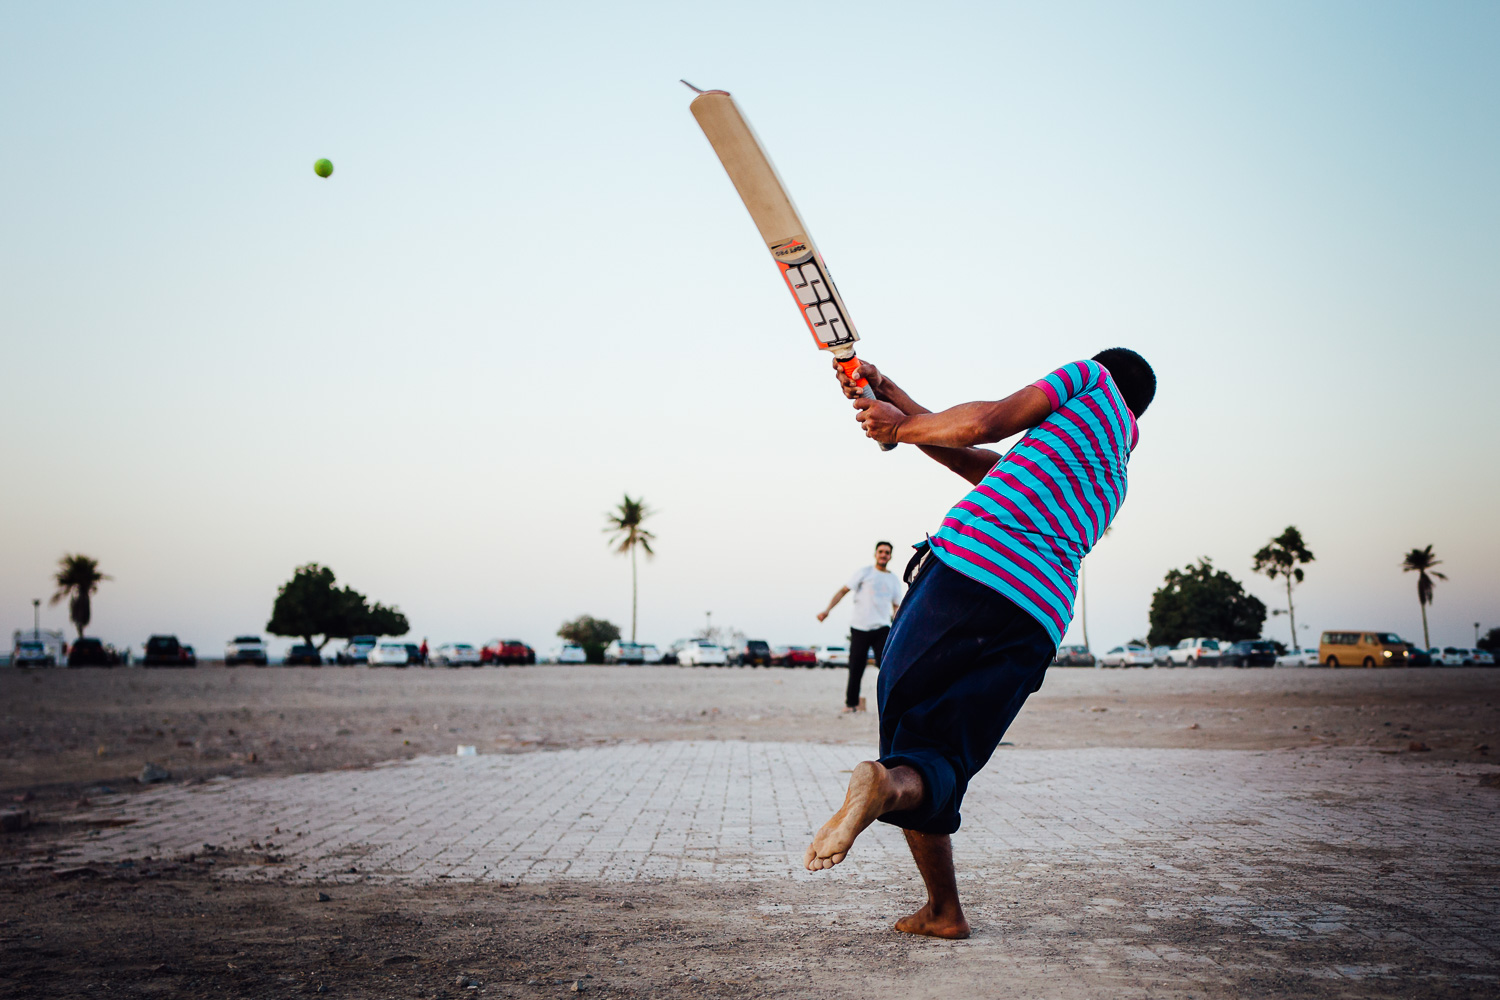 Cricket-Sports-Action-Durazo-Photography-Project-Travel-Street.jpg